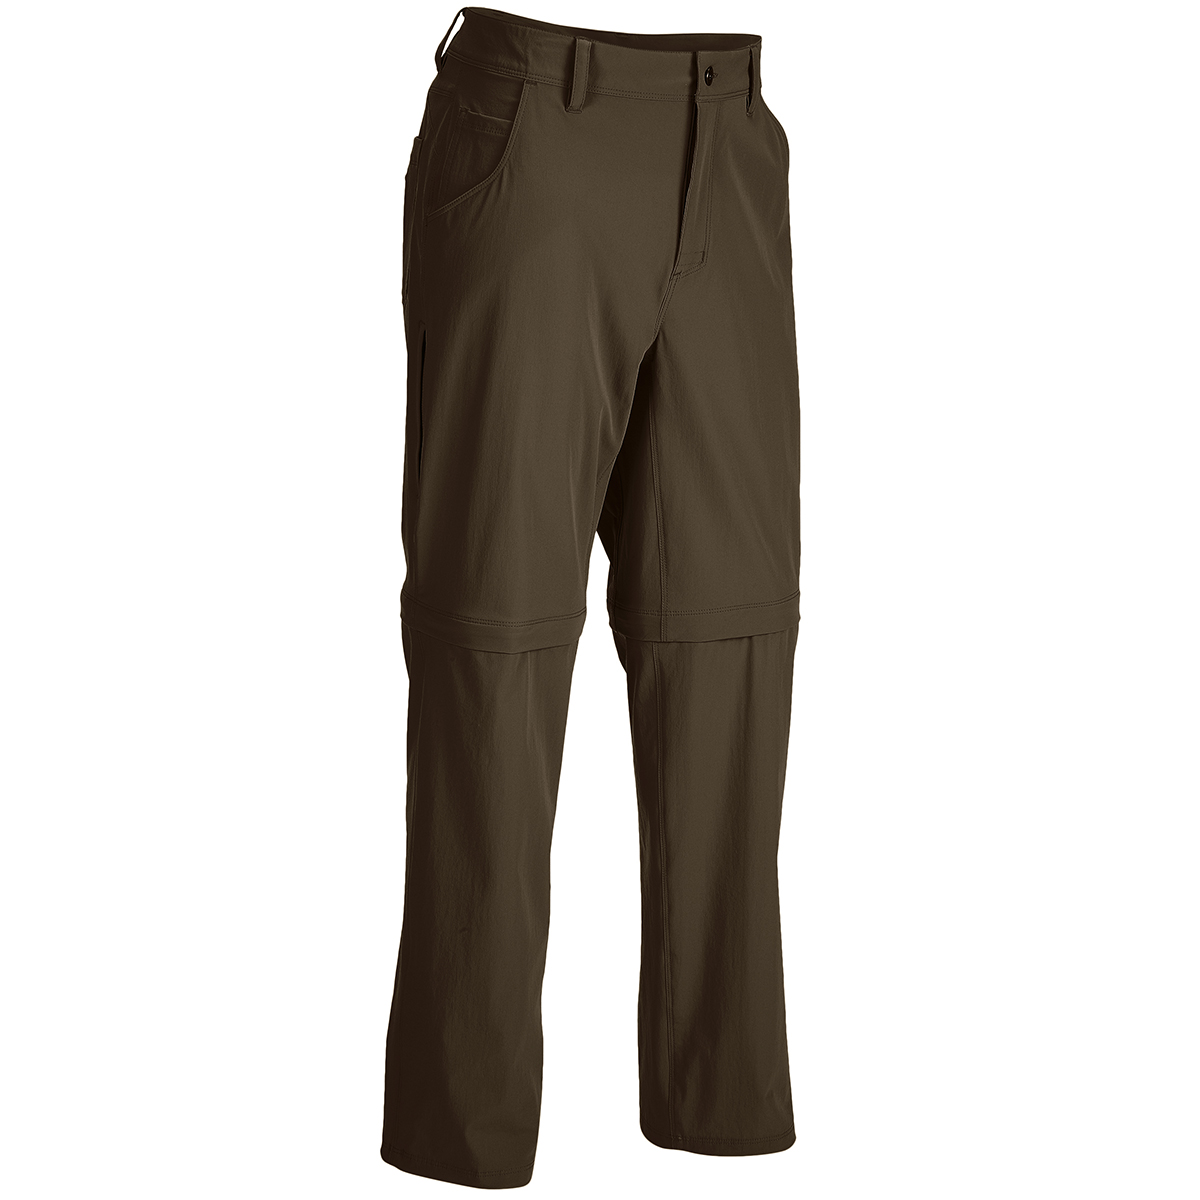 Ems Men's Compass 4-Point Zip-Off Pant - Brown, 30